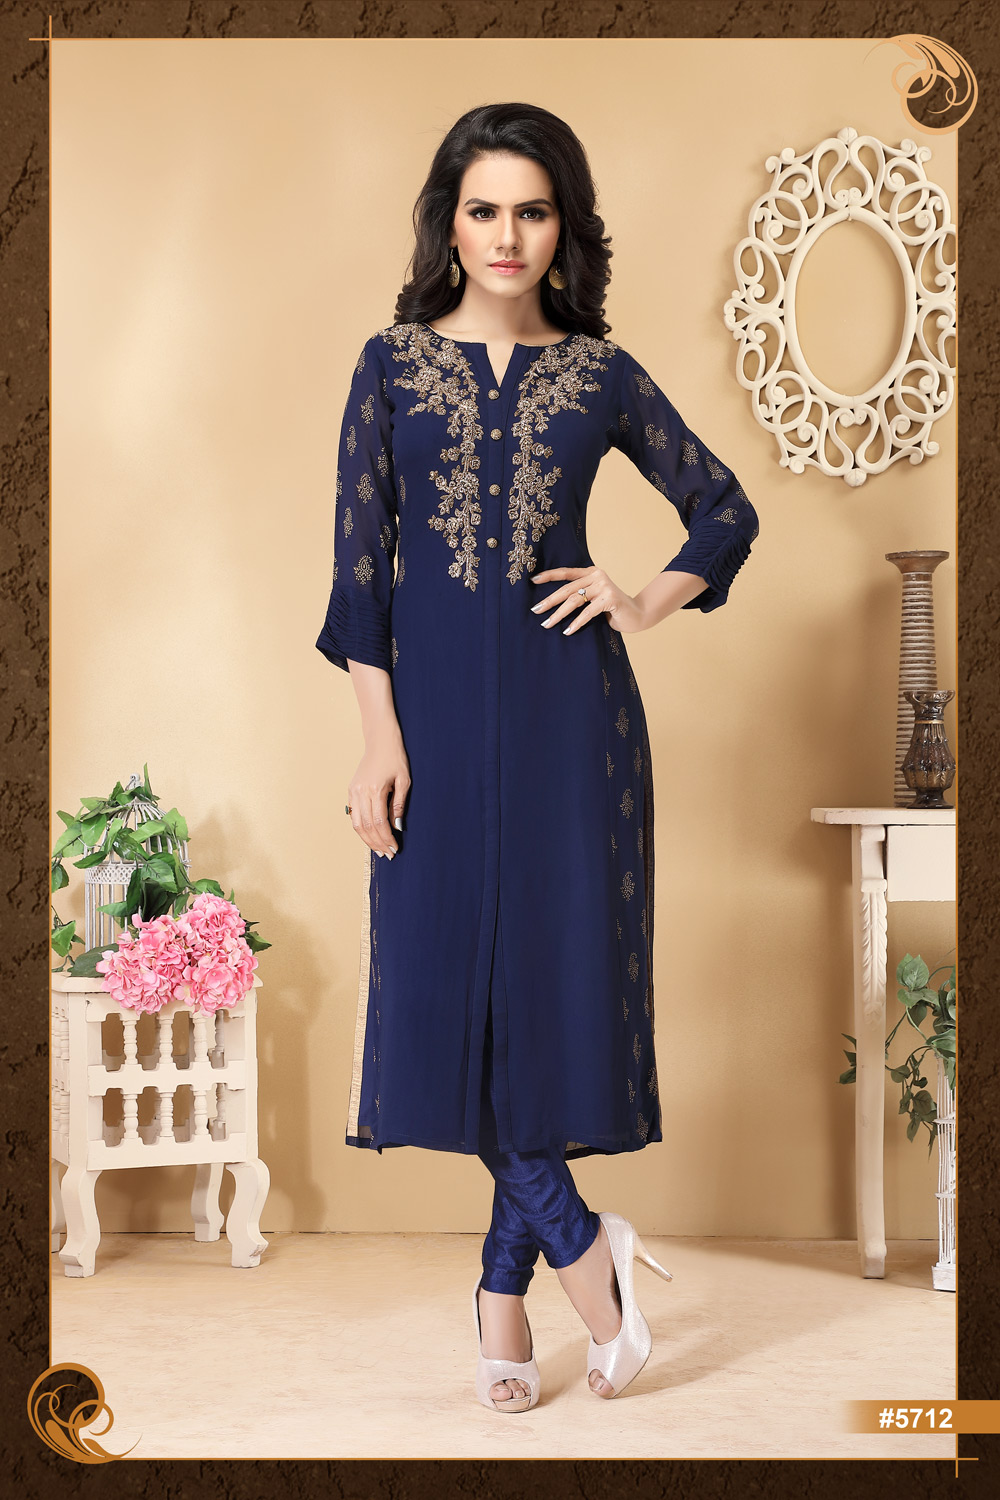 Stylish Kurti perfect for any occasion